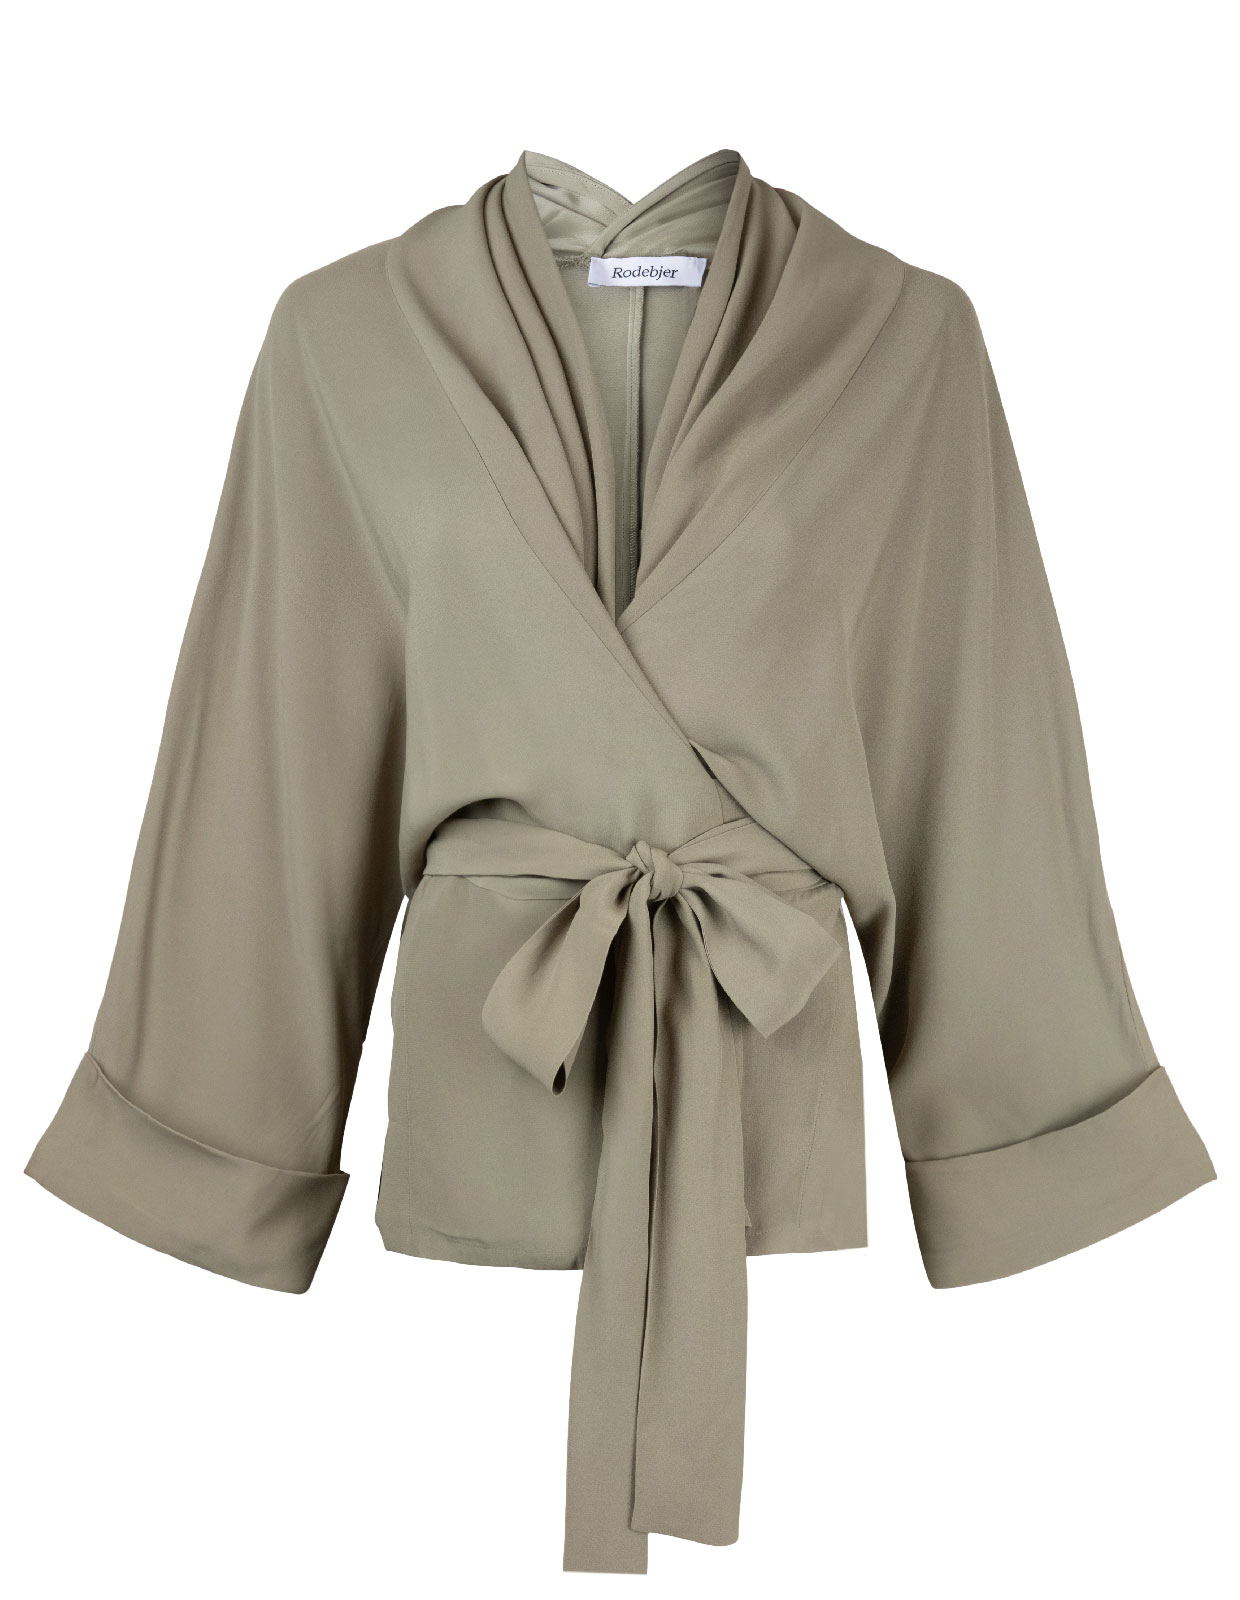 Rodebjer Kimono Tennessee Twill Olive leaf